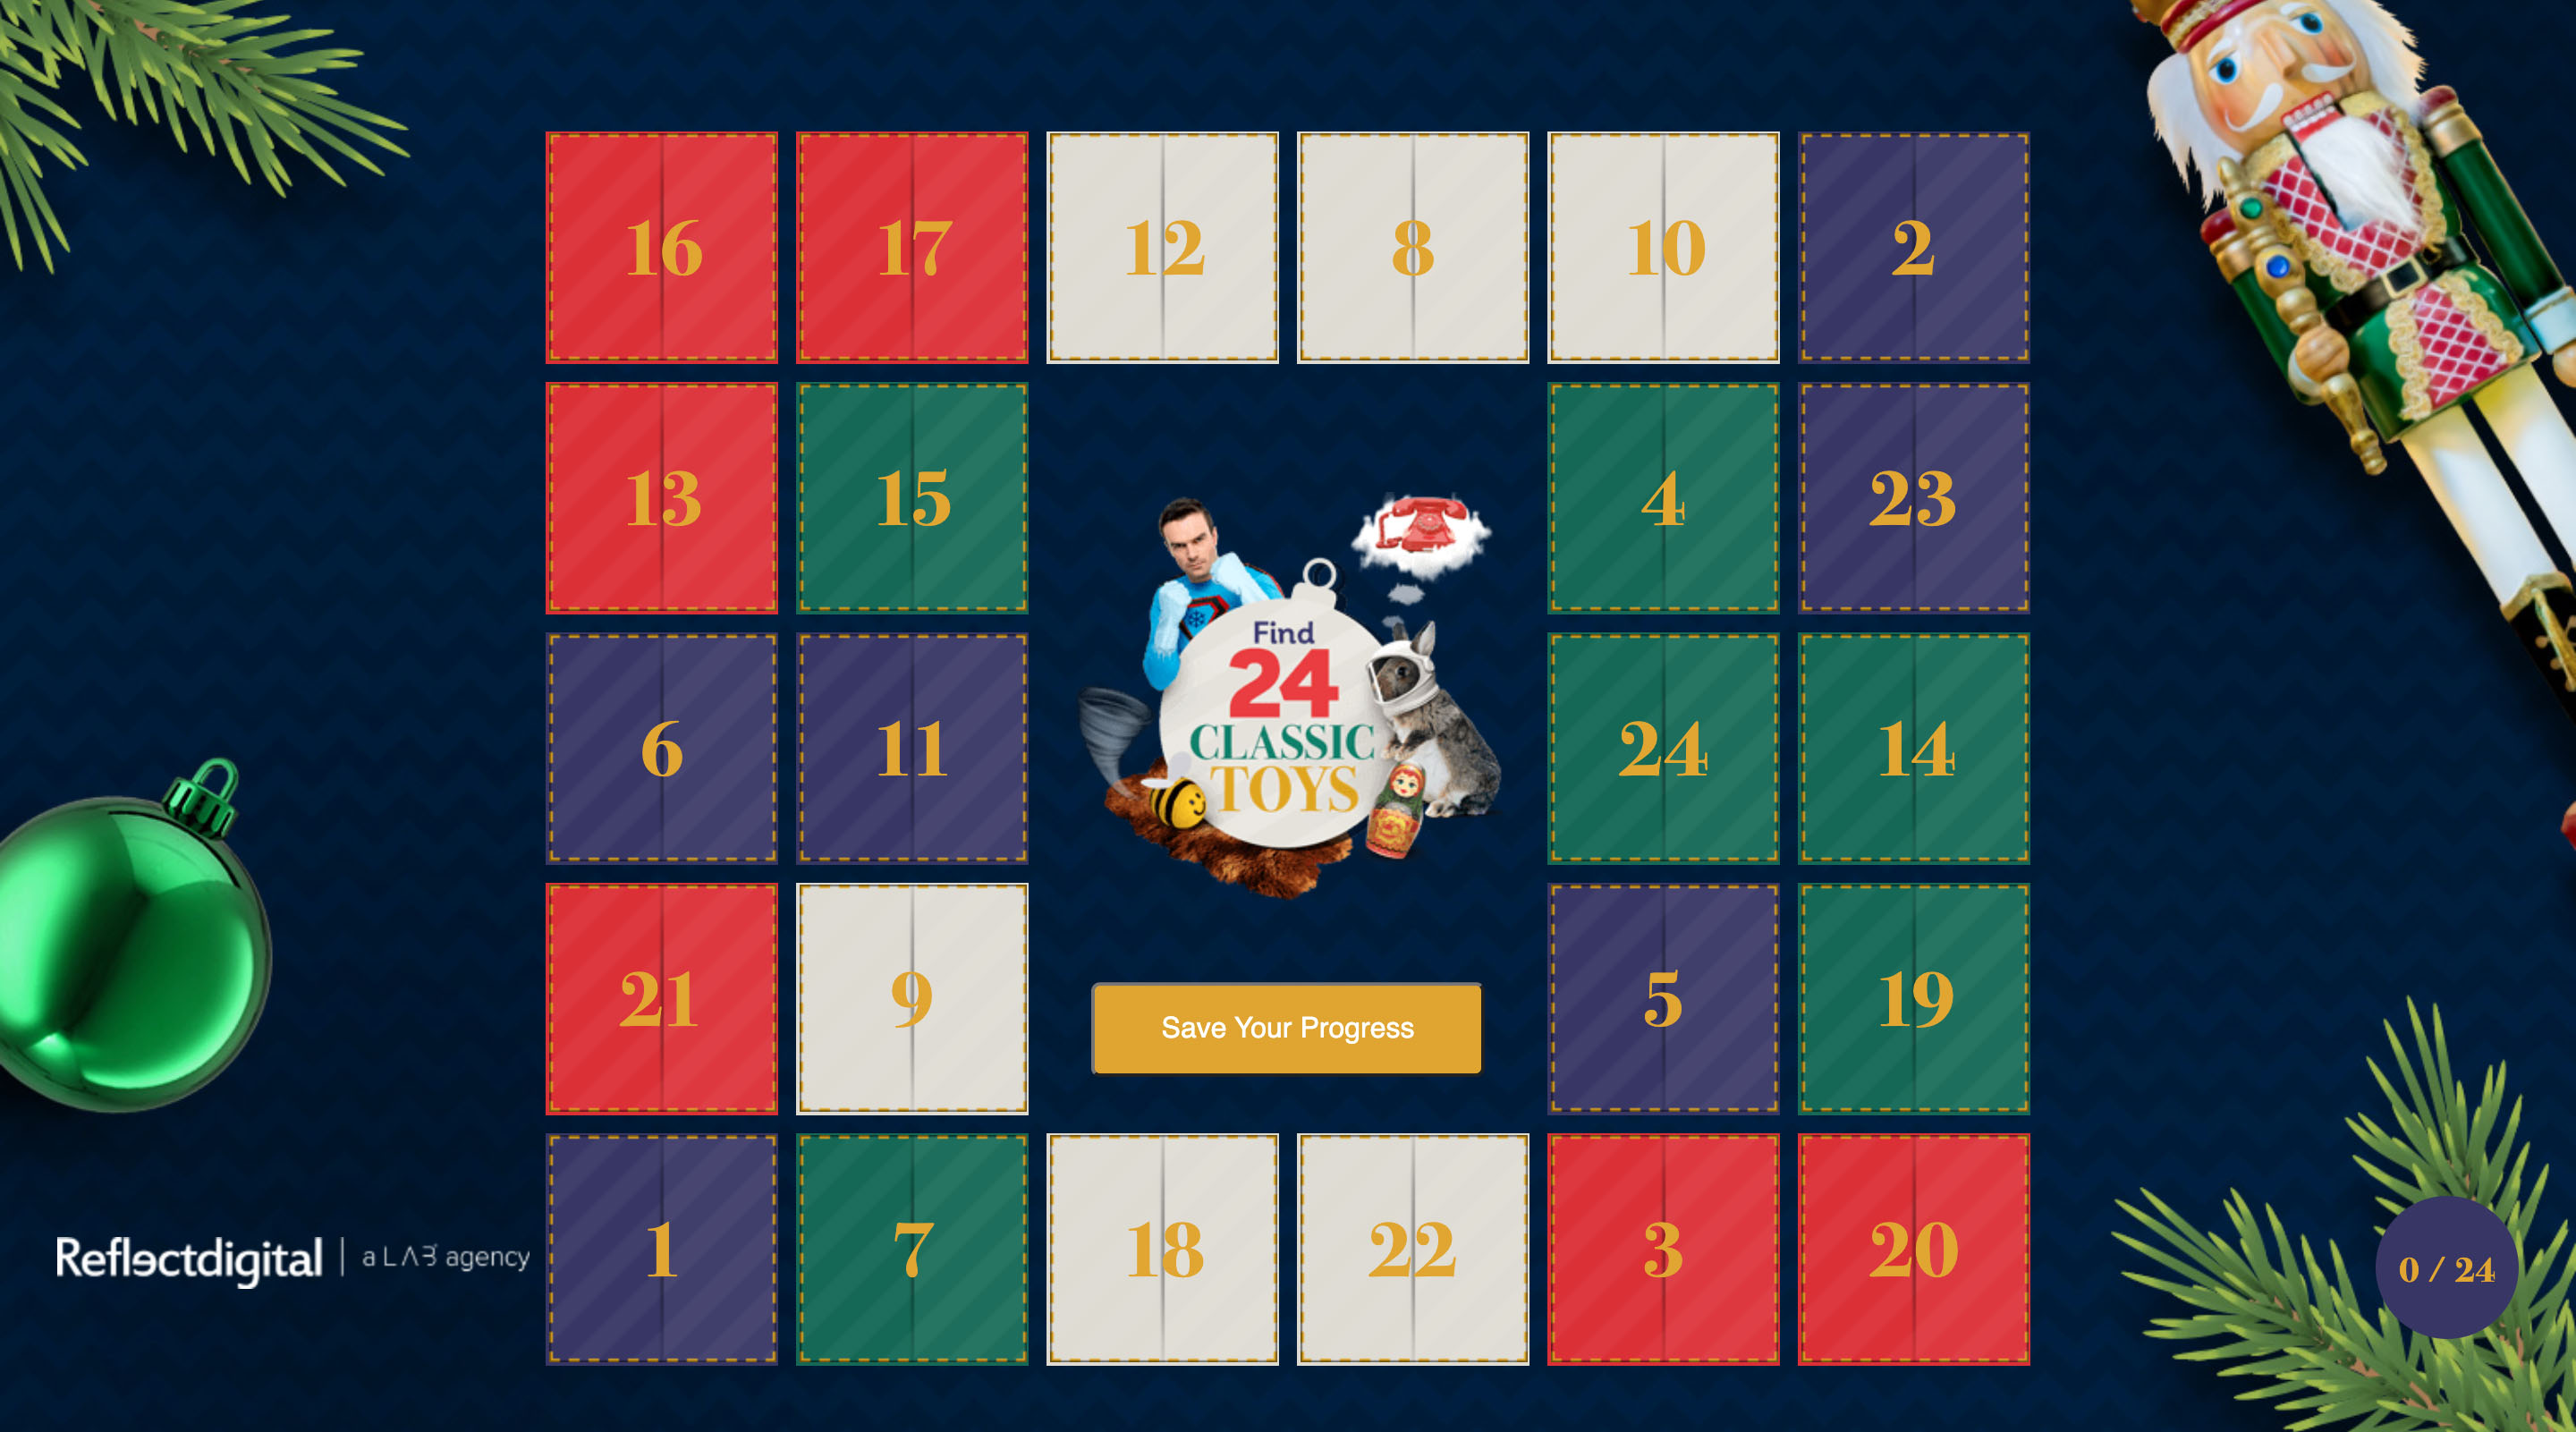 Reflect Digital: classic toys appear in advent quiz